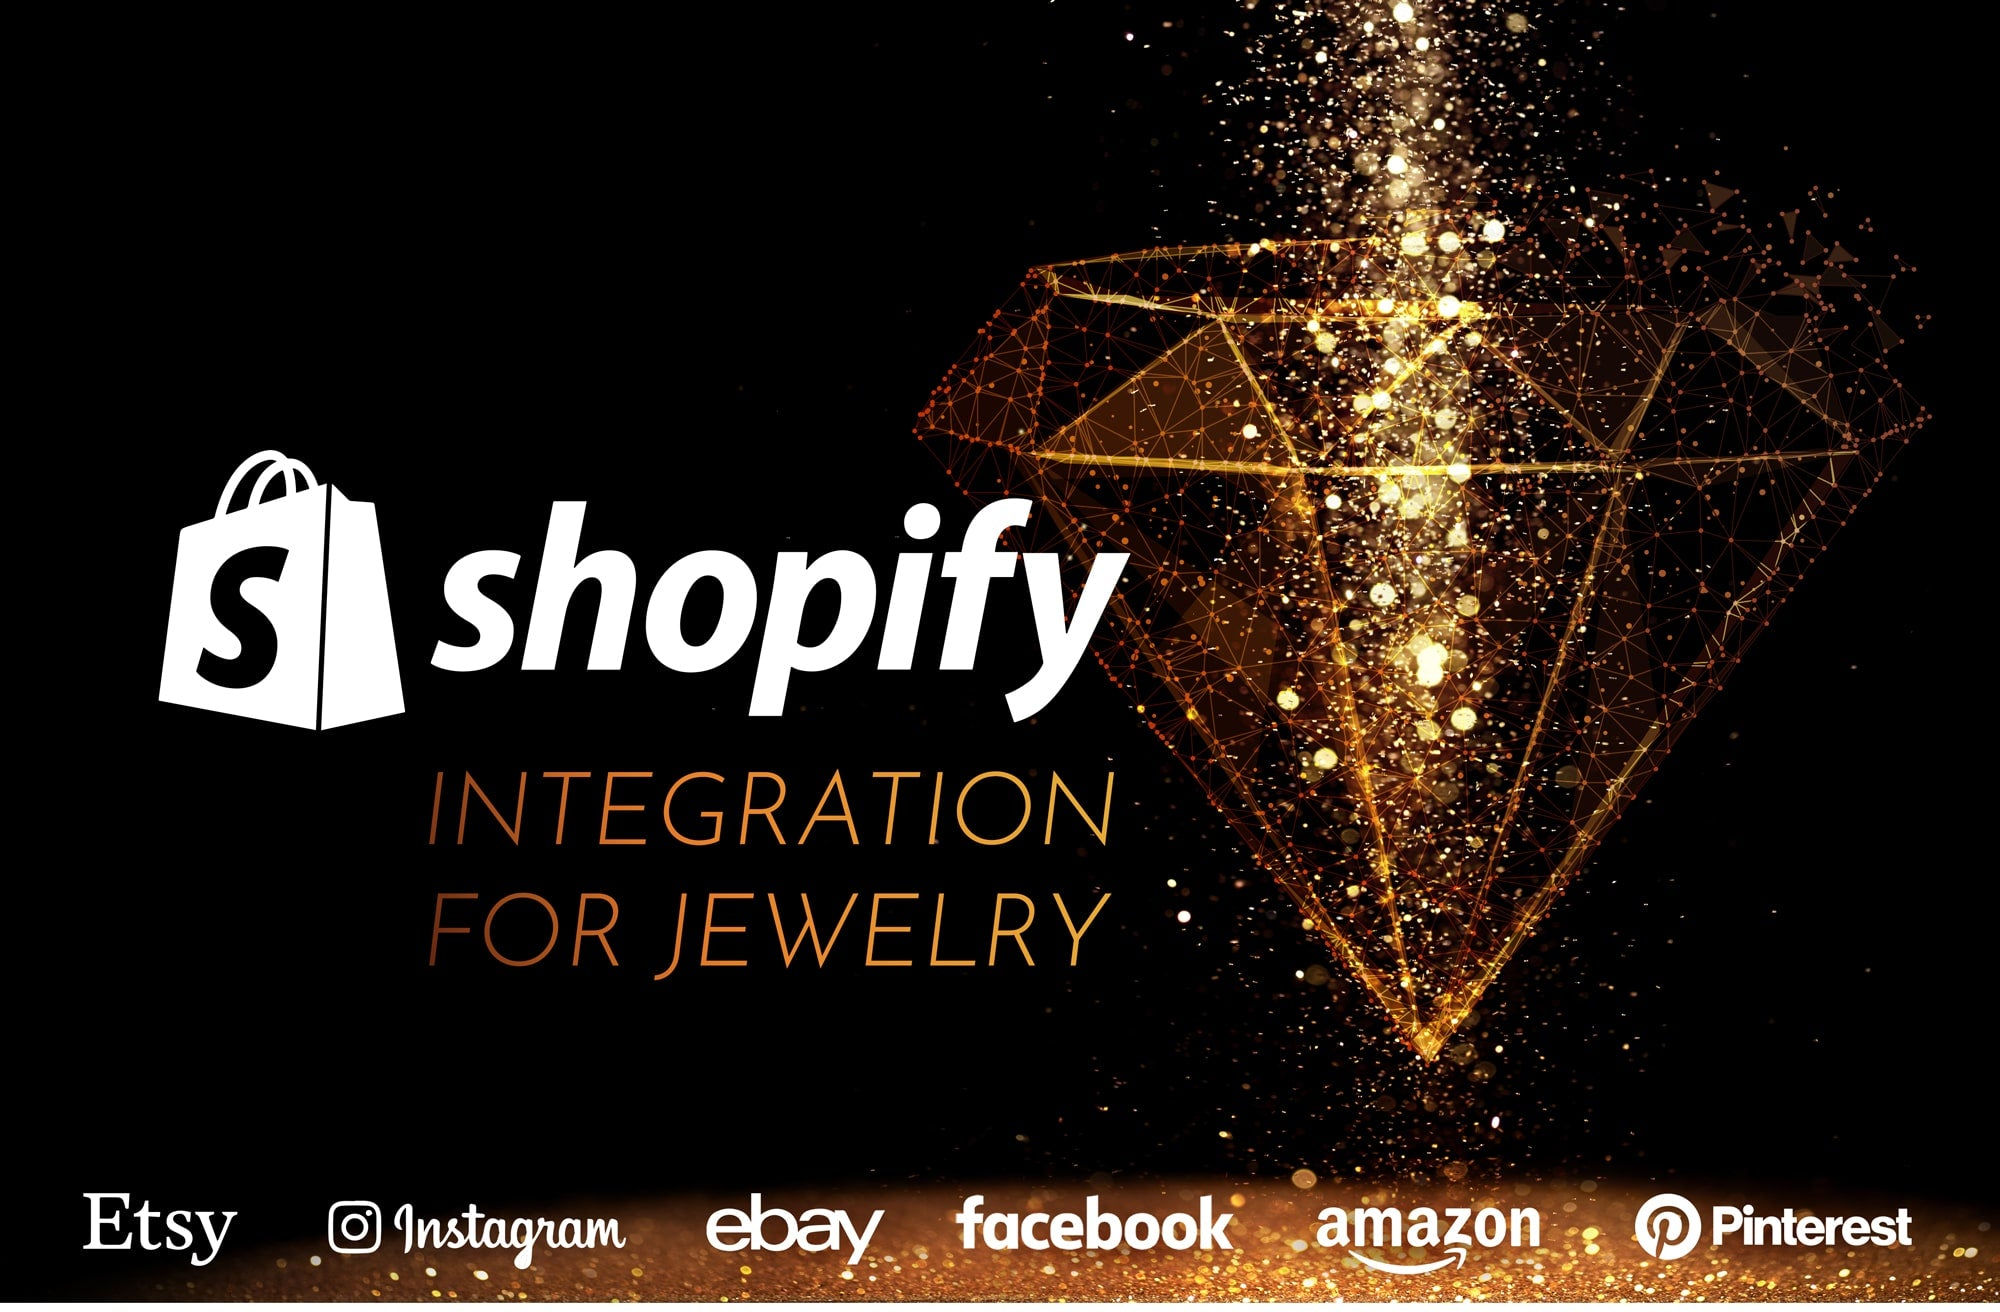 Shopify Integration Marketing For jewelry